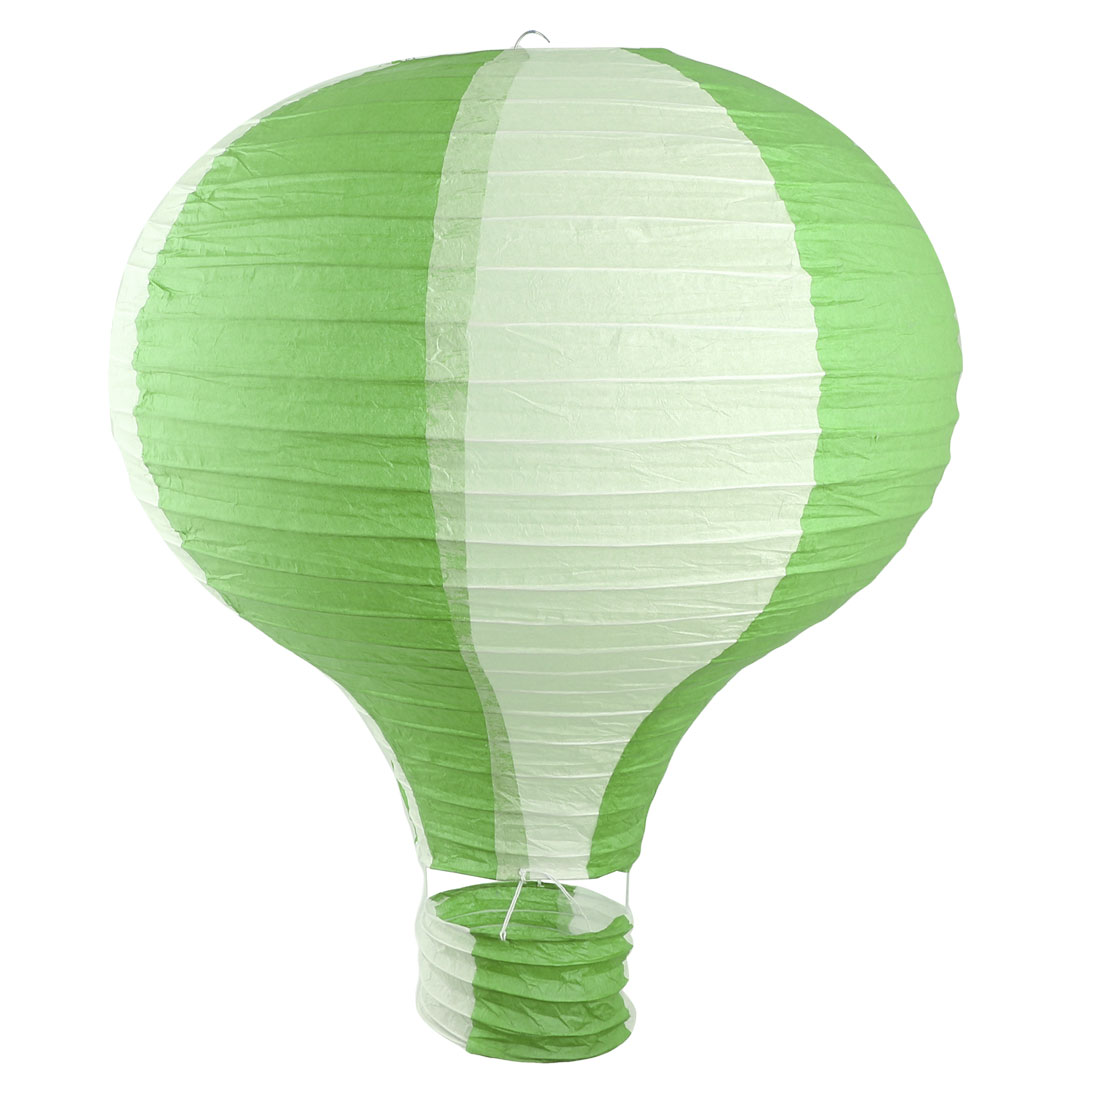 Household Party Paper Lightless Hanging DIY Decor Hot Air Balloon Lantern Green White 16 Inch Dia